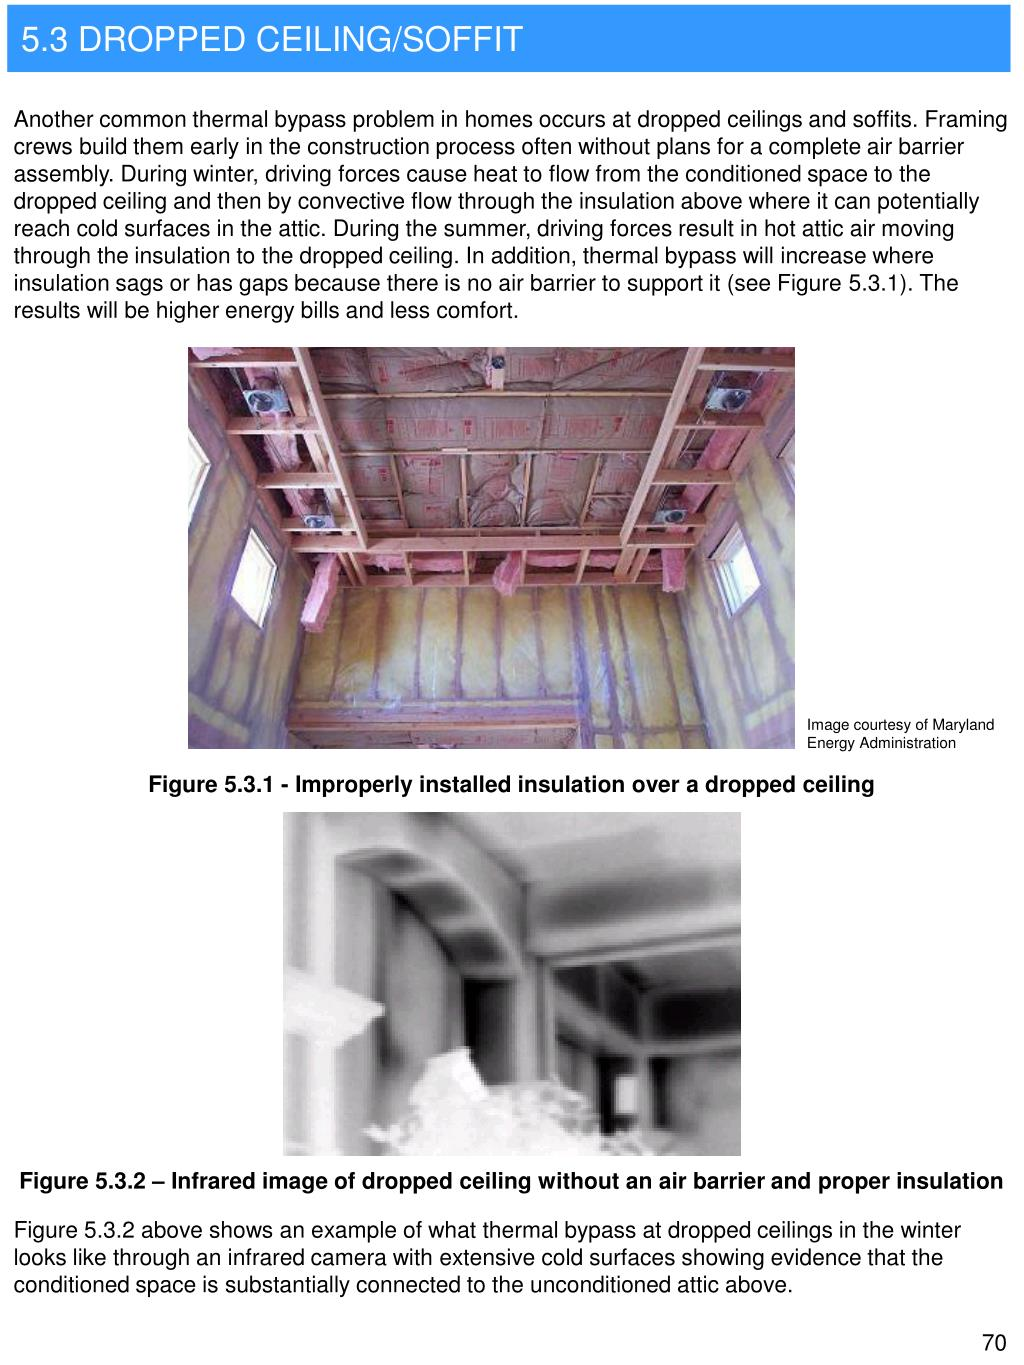 5.3 DROPPED CEILING/SOFFIT